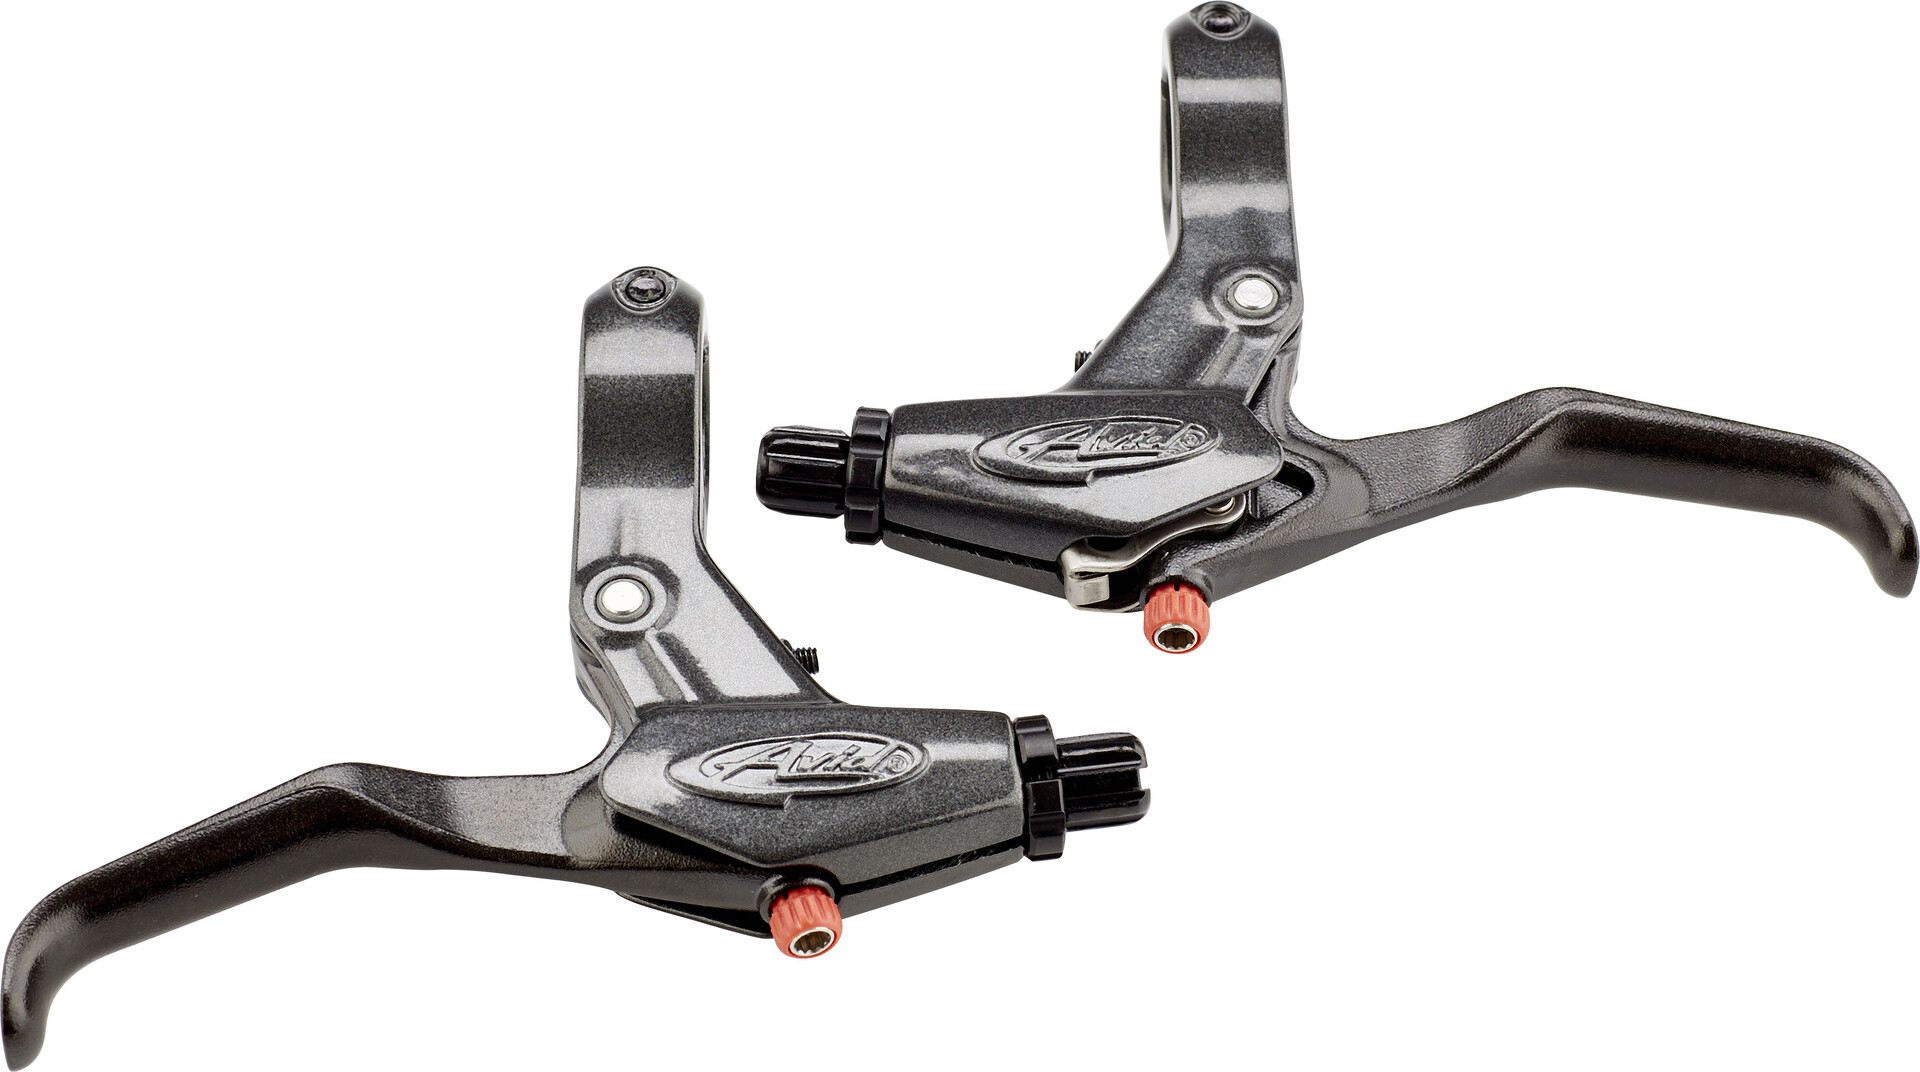 Avid Speed Dial 7 Brake Lever 7 Right and Left Pair Gray Linear Pull Brakes Set